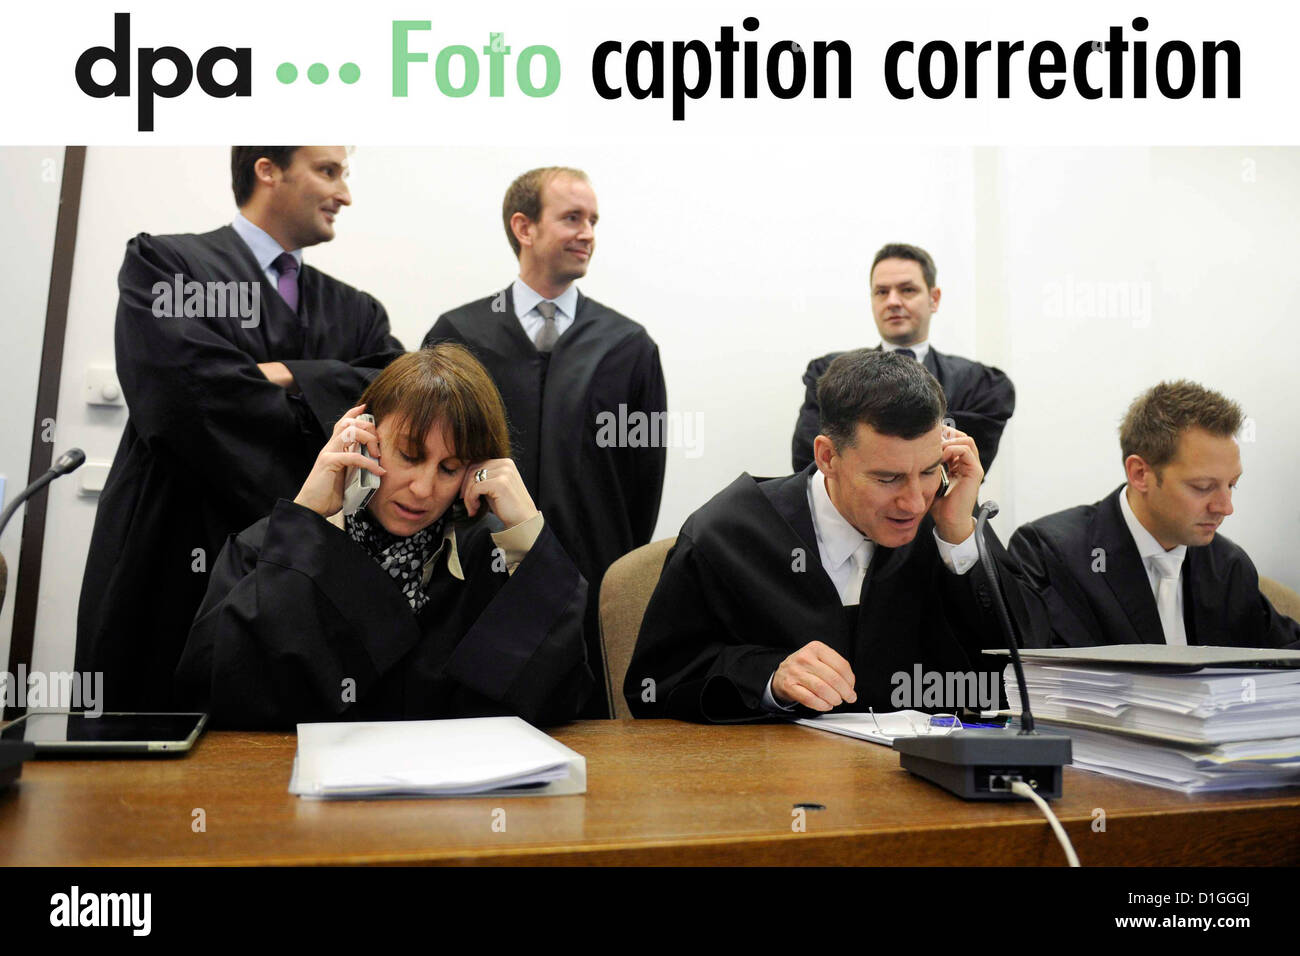 Dear customers, the people in this picture sent on 18 December 2012 have been wrongly identified. They are representatives - Stock Image